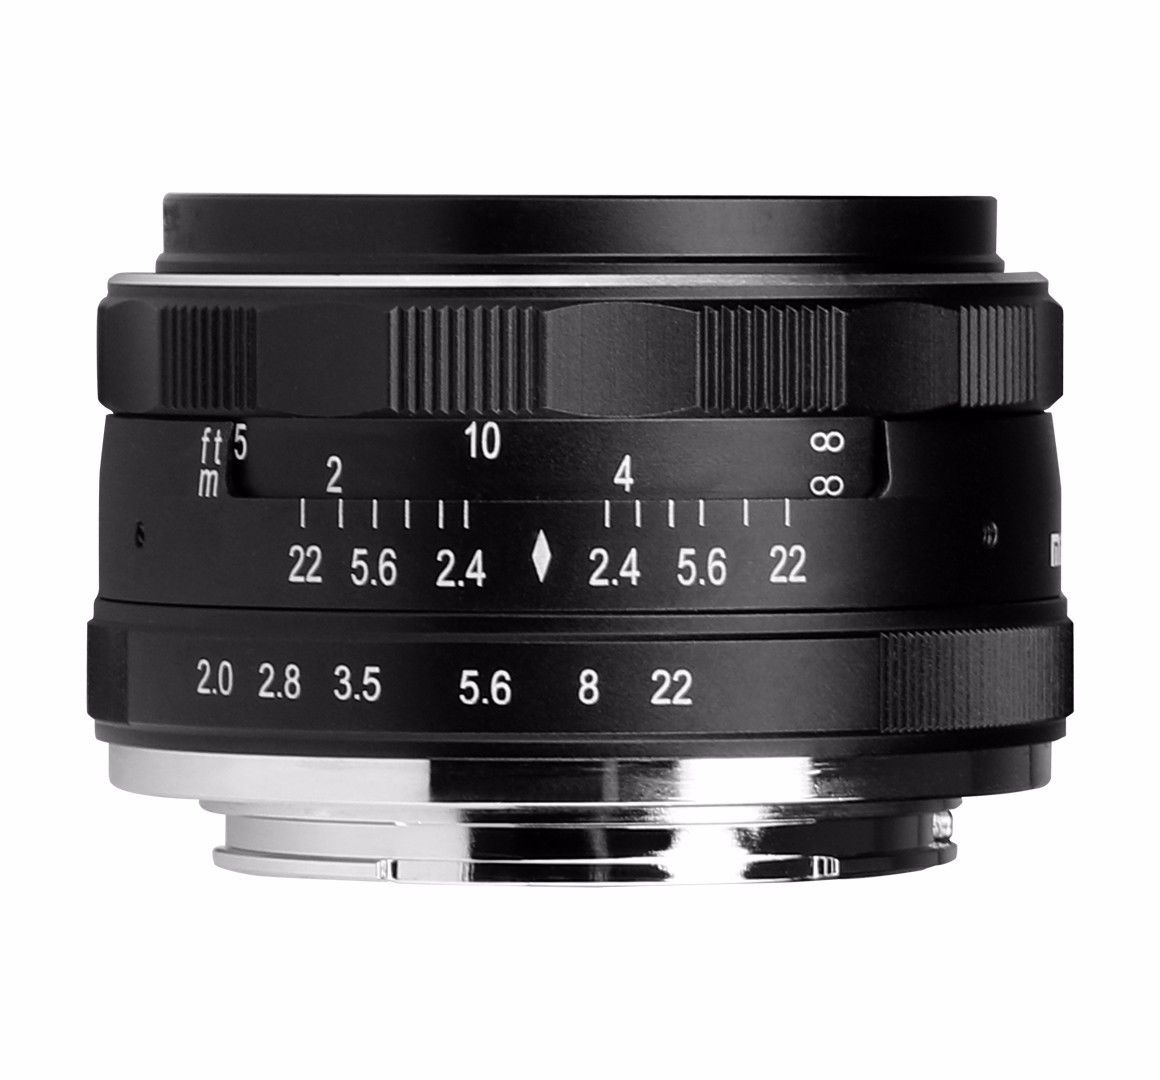 50mm F2.0 Aperture Manual Focus Lens APS-C for eosm nikon1 m43 Sony e mount NEX3/5T/6/7 A5000 A6000 a6300 fuji xt1 camera 60mm f 2 8 2 1 2x super macro manual focus lens for micro 4 3 m43 panasonic dmc gf2 gf1 g2 gf3 g5 gh4 gh3 e m5 ep 3 e pl3